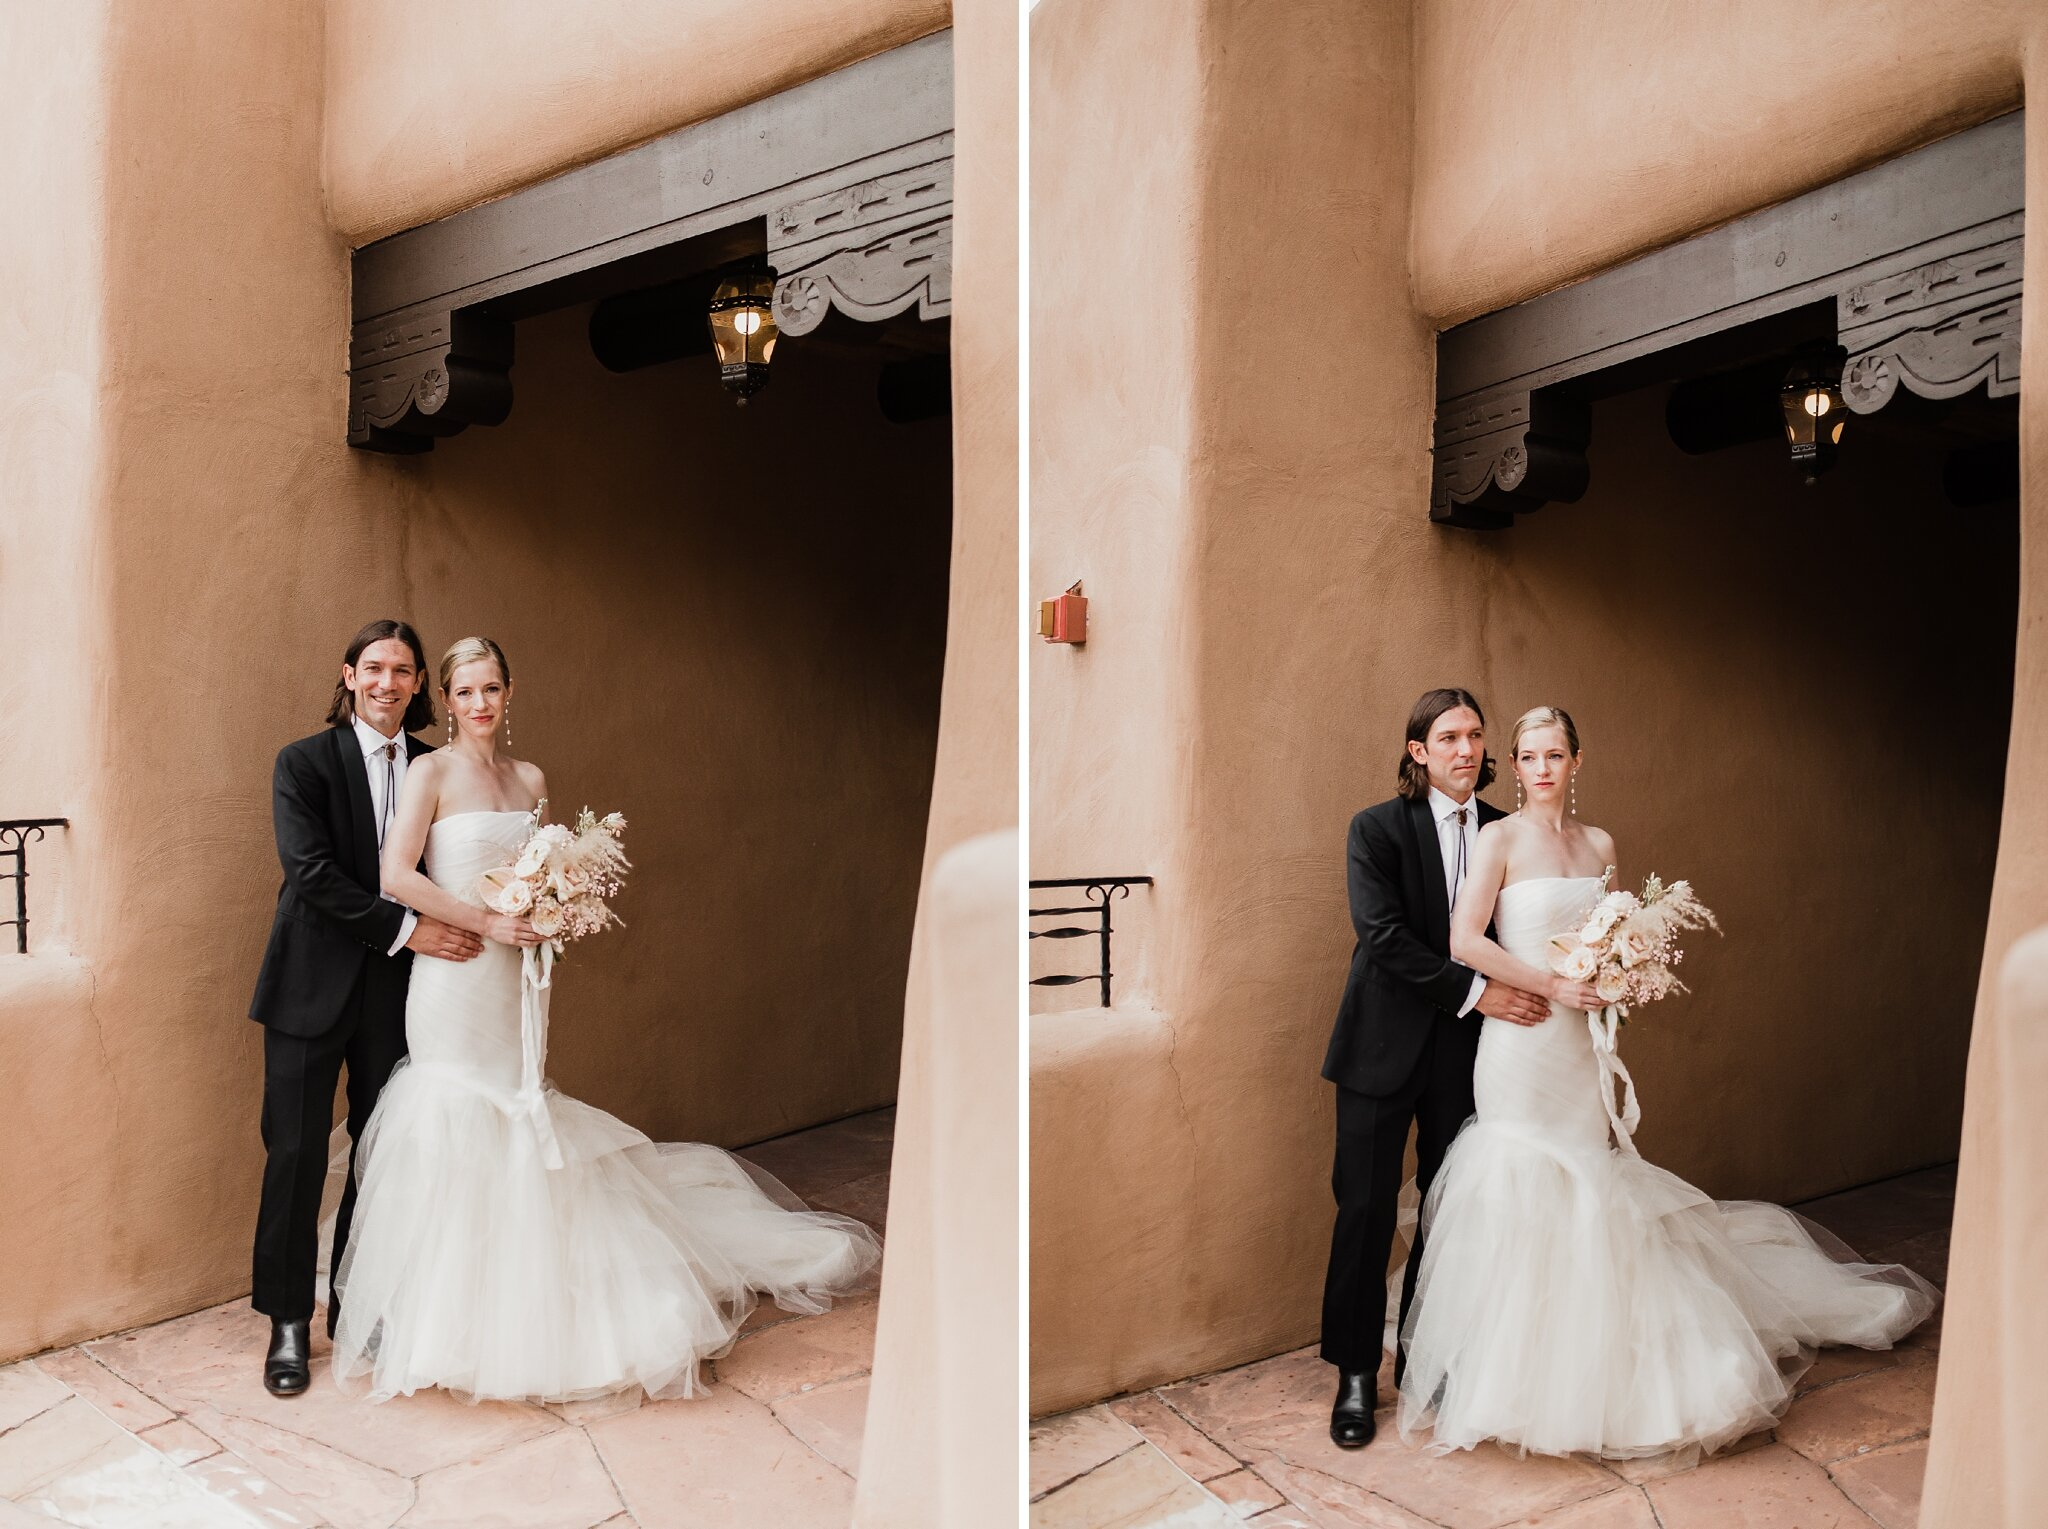 Alicia+lucia+photography+-+albuquerque+wedding+photographer+-+santa+fe+wedding+photography+-+new+mexico+wedding+photographer+-+new+mexico+wedding+-+la+fonda+wedding+-+la+fonda+on+the+plaza+-+santa+fe+wedding+-+brooklyn+bride_0065.jpg